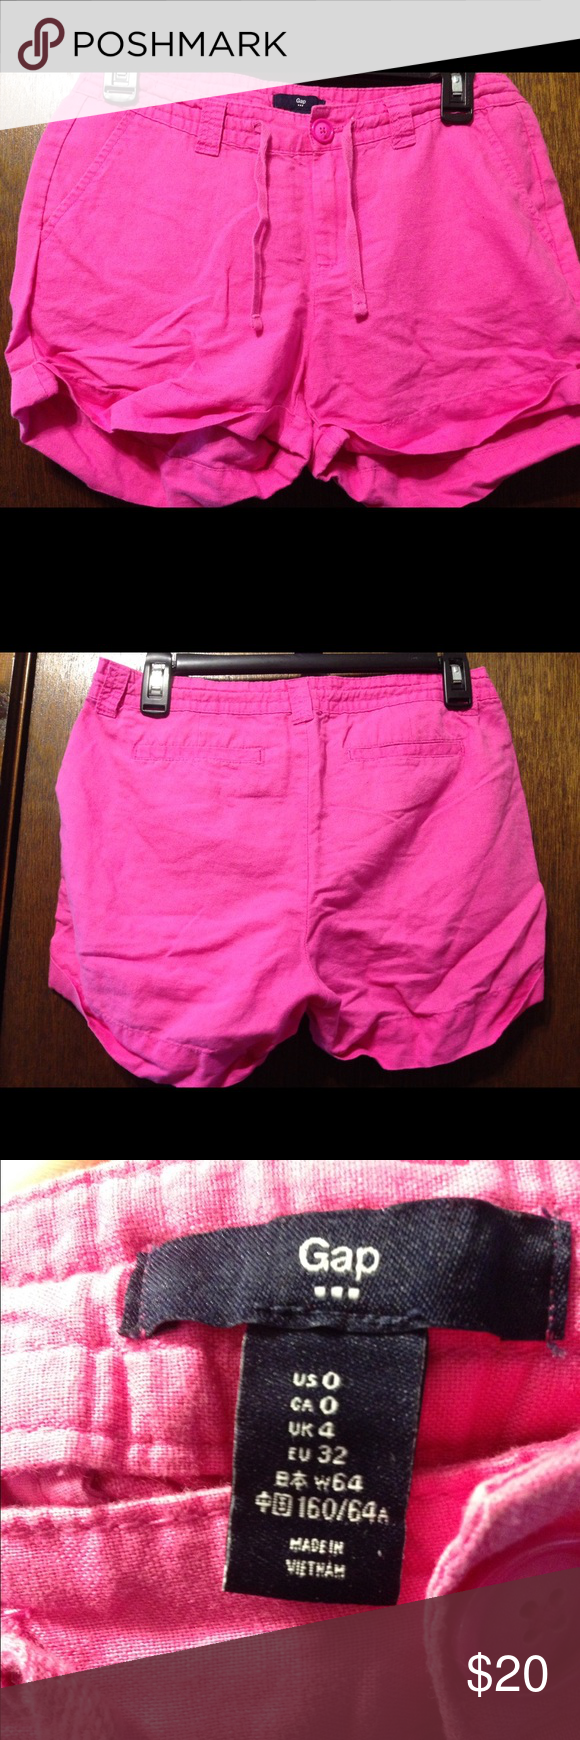 Linen shorts Pink linen shorts are barely worn and very comfy! I think Gap sizes run a bit large personally so these are a bit roomy :) purchased within the last year and didn't wear as much as I had hoped! Please give these a new home-you won't regret it :) OBO GAP Shorts